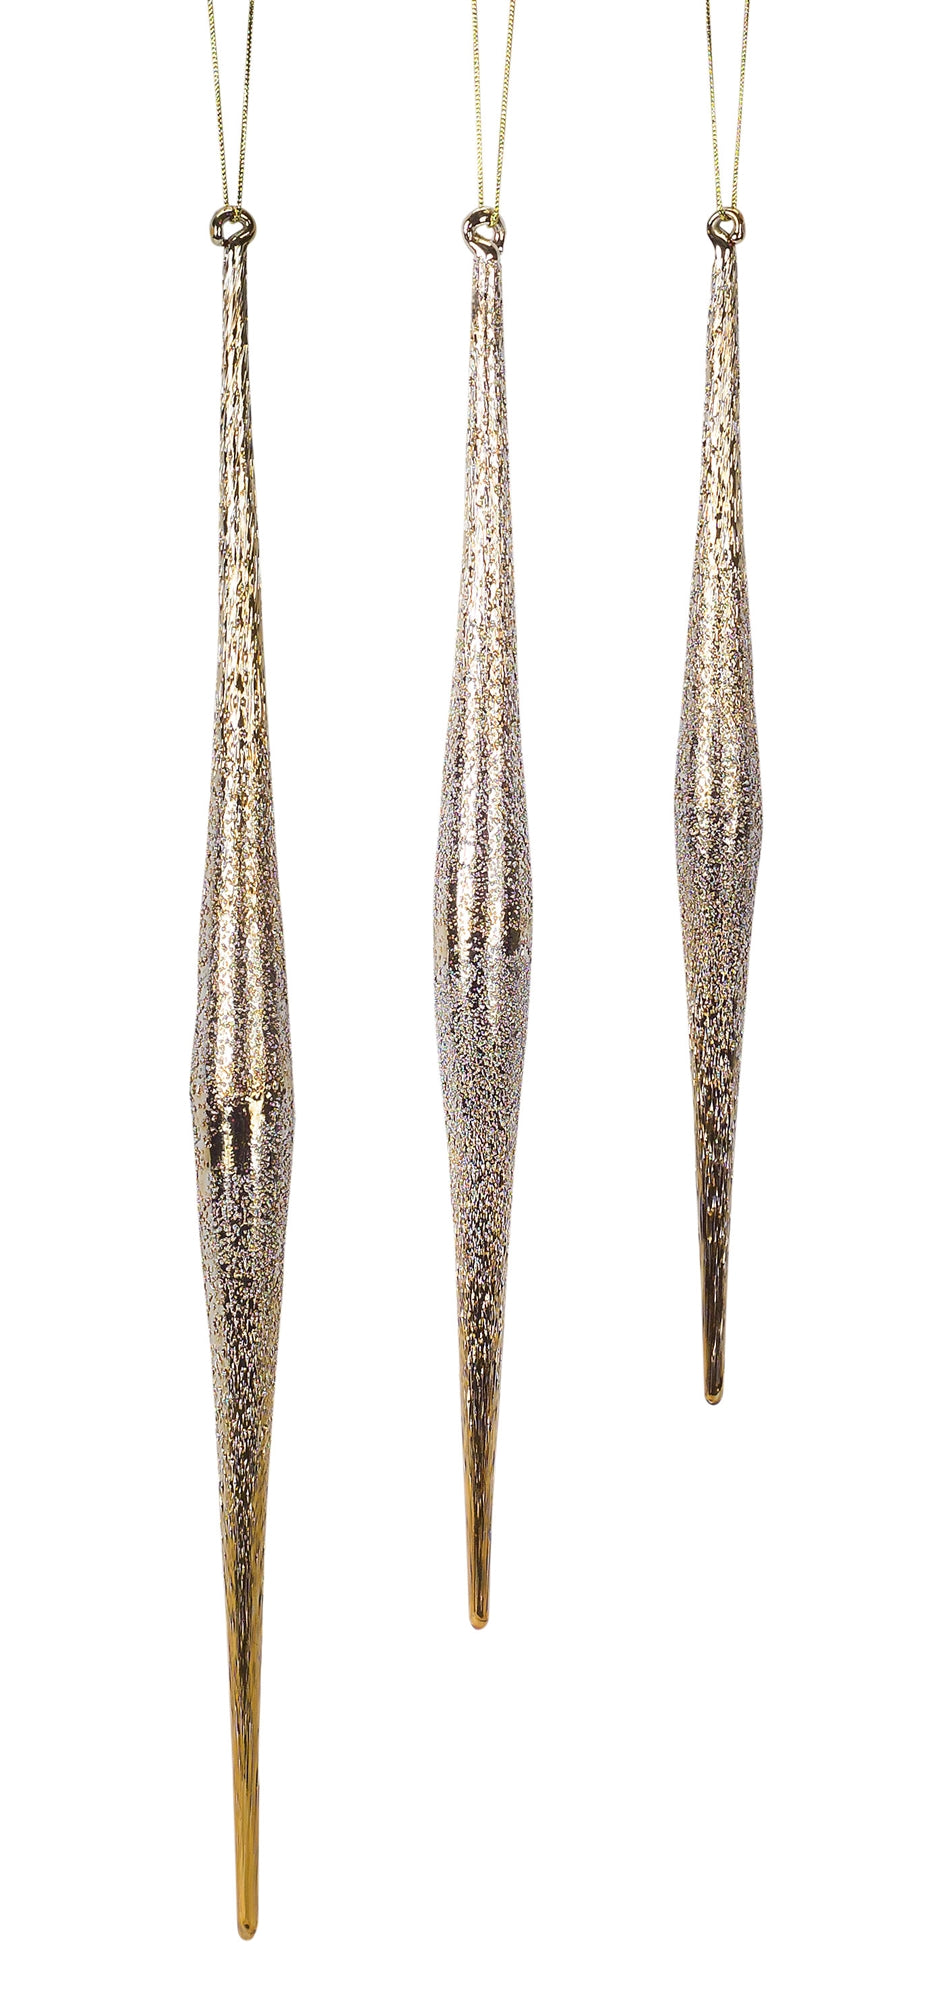 Gold Icicle Ornaments, Set of 3